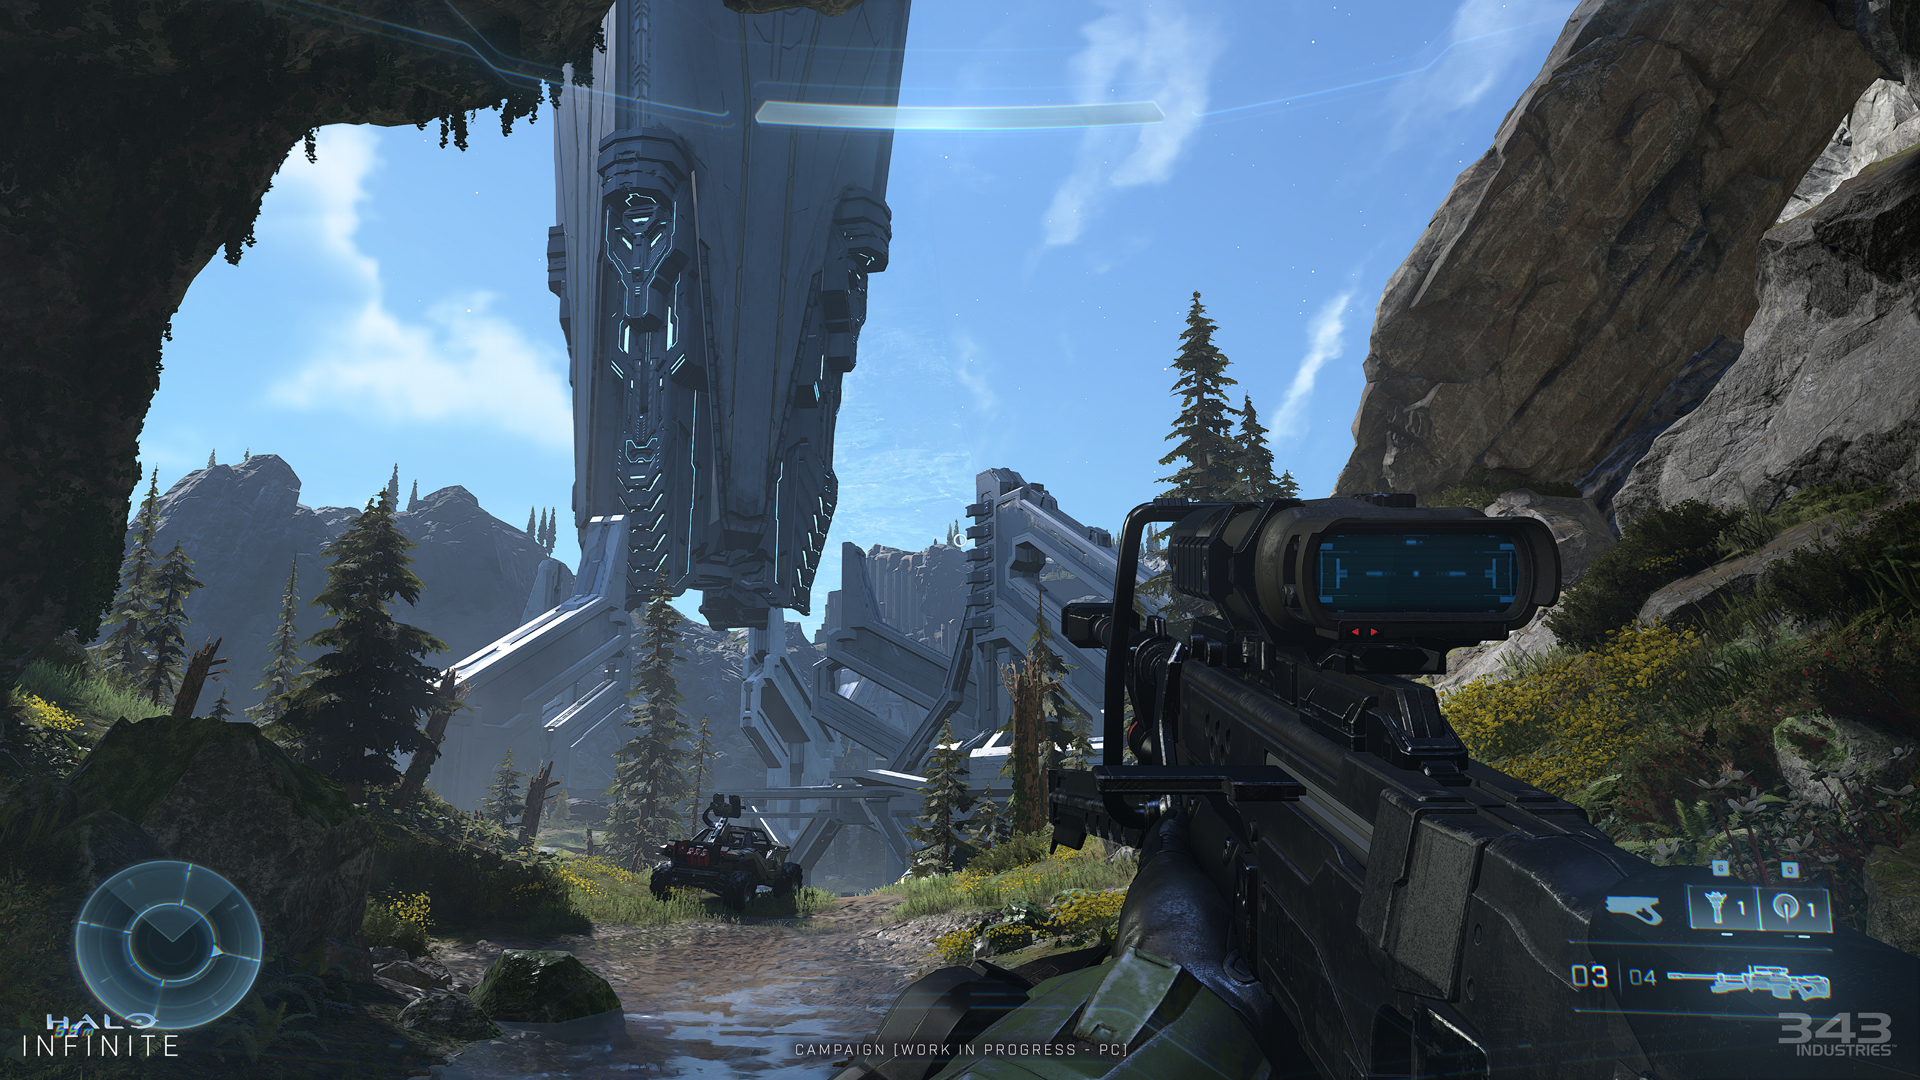 Halo Infinite Hud With Sniper